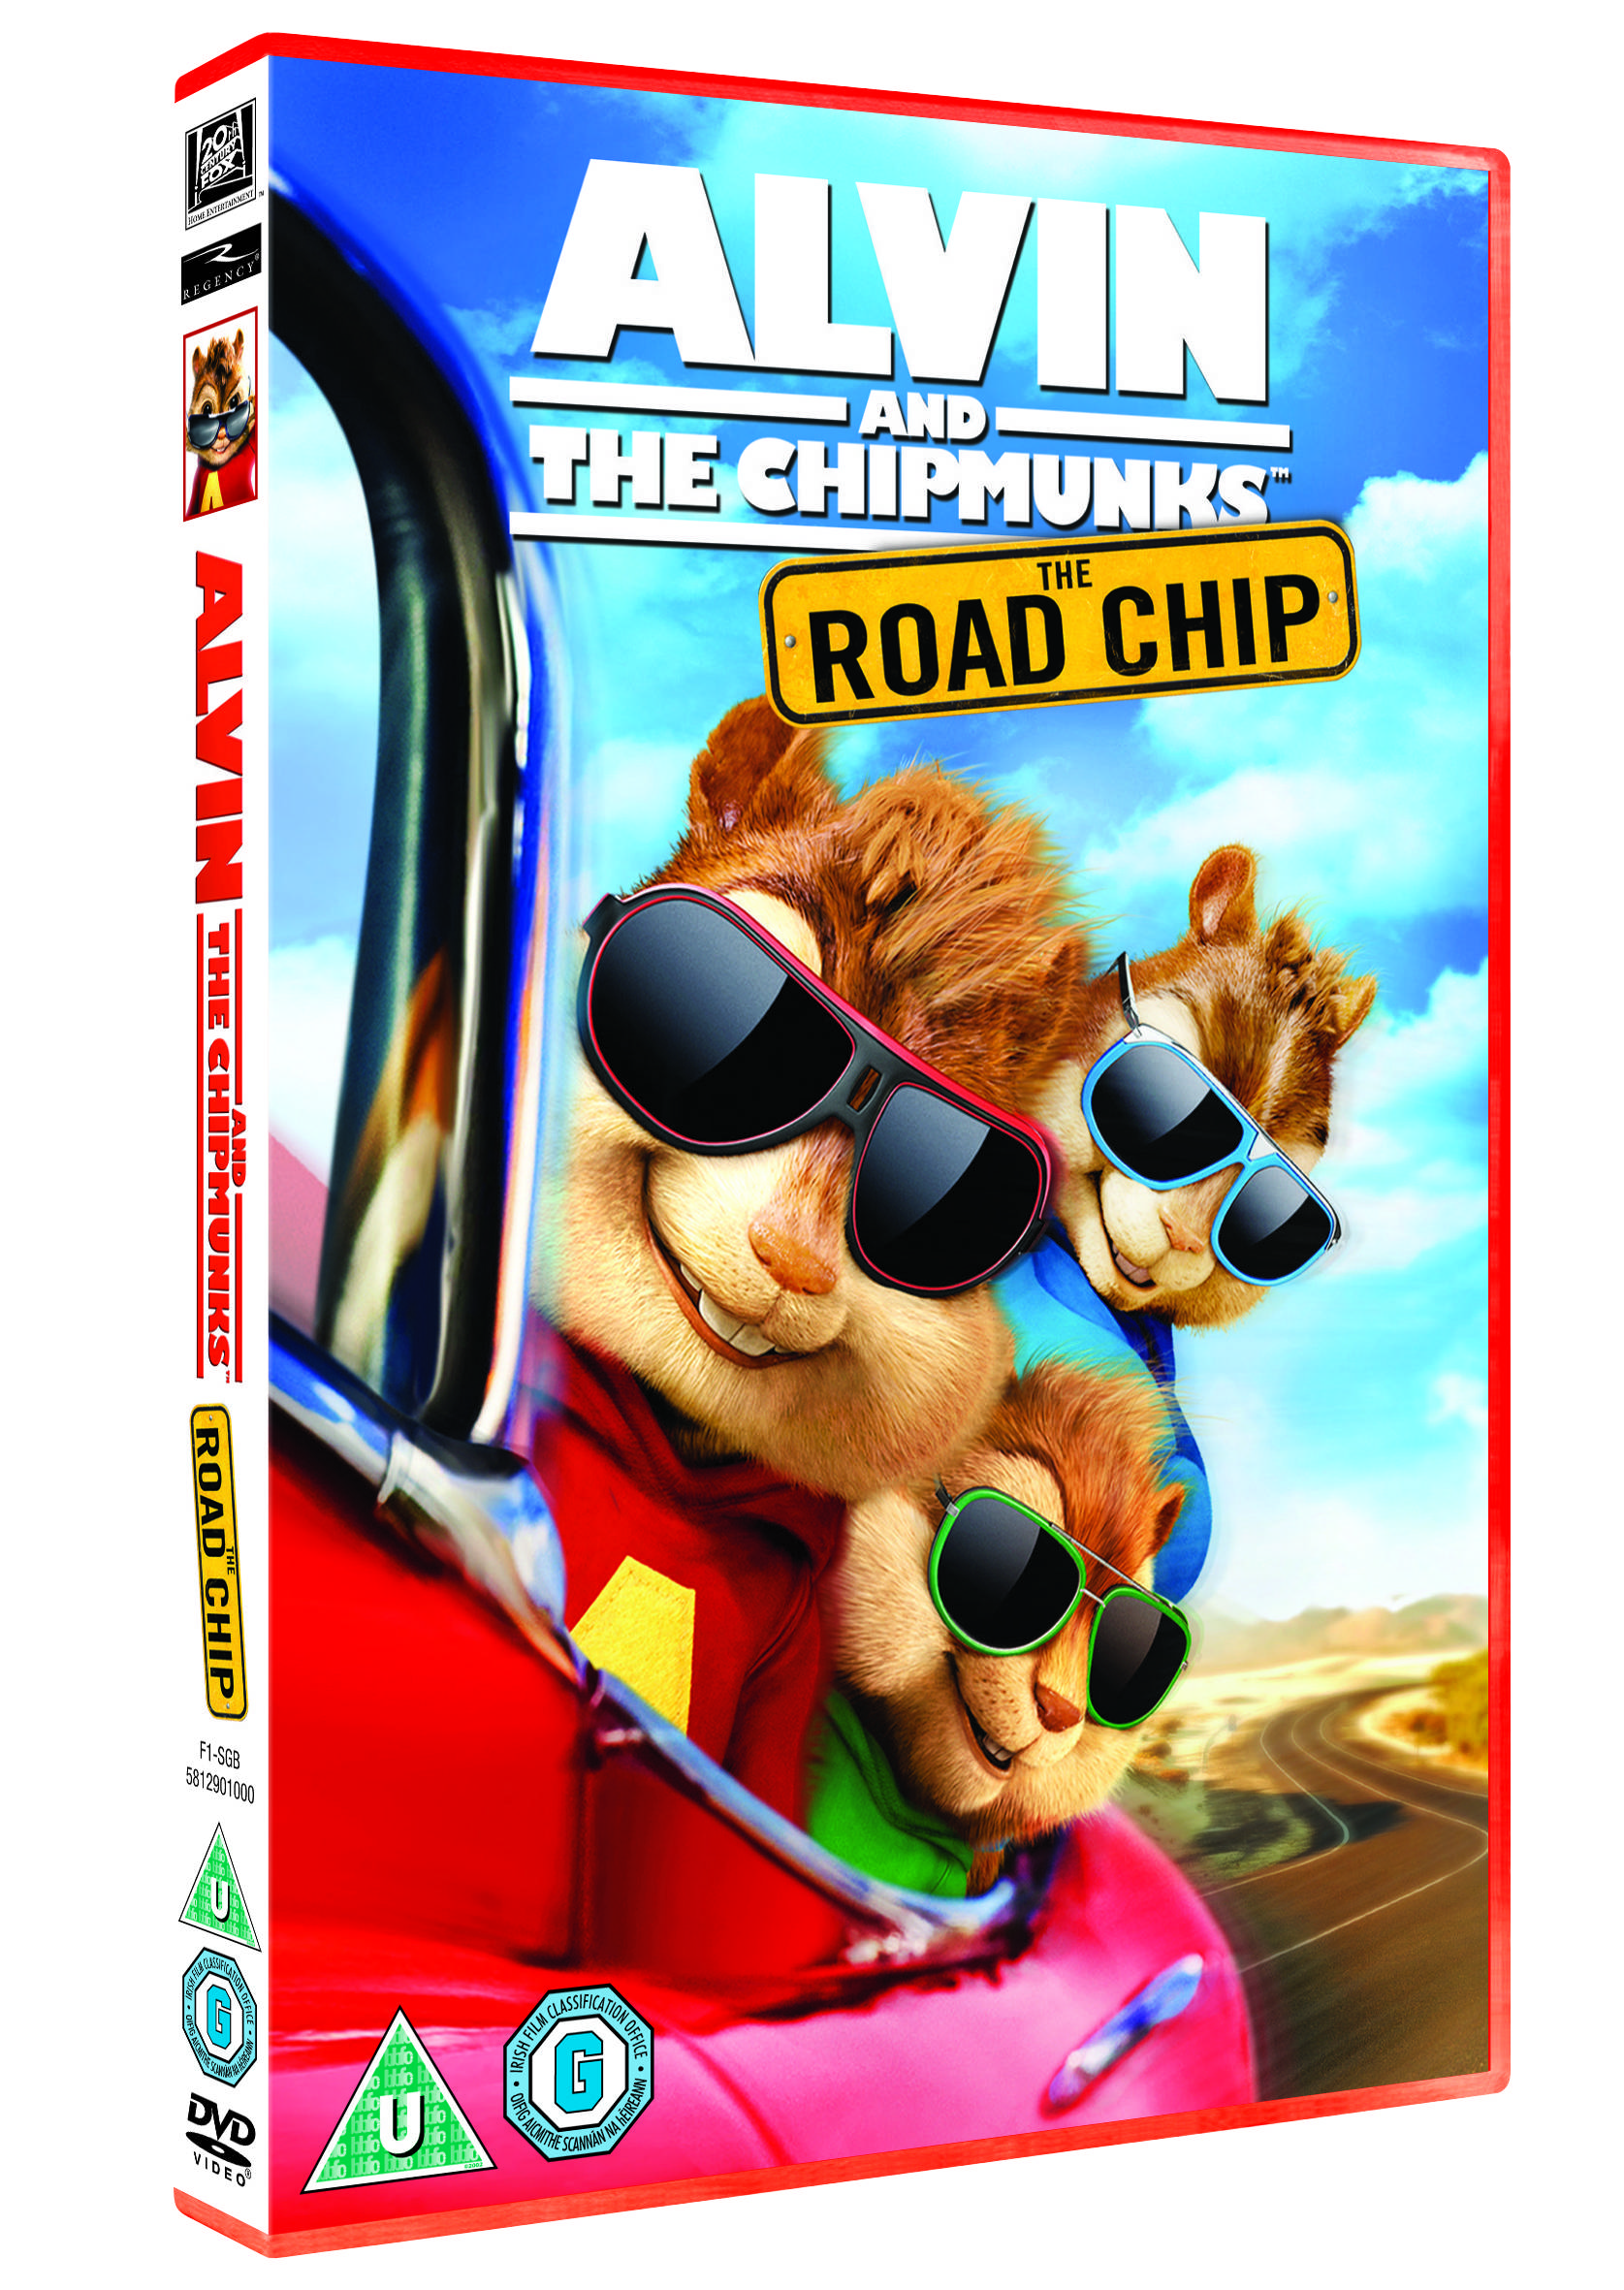 ALVIN AND THE CHIPMUNKS THE ROAD CHIP UK DVD 3D PACKSHOT